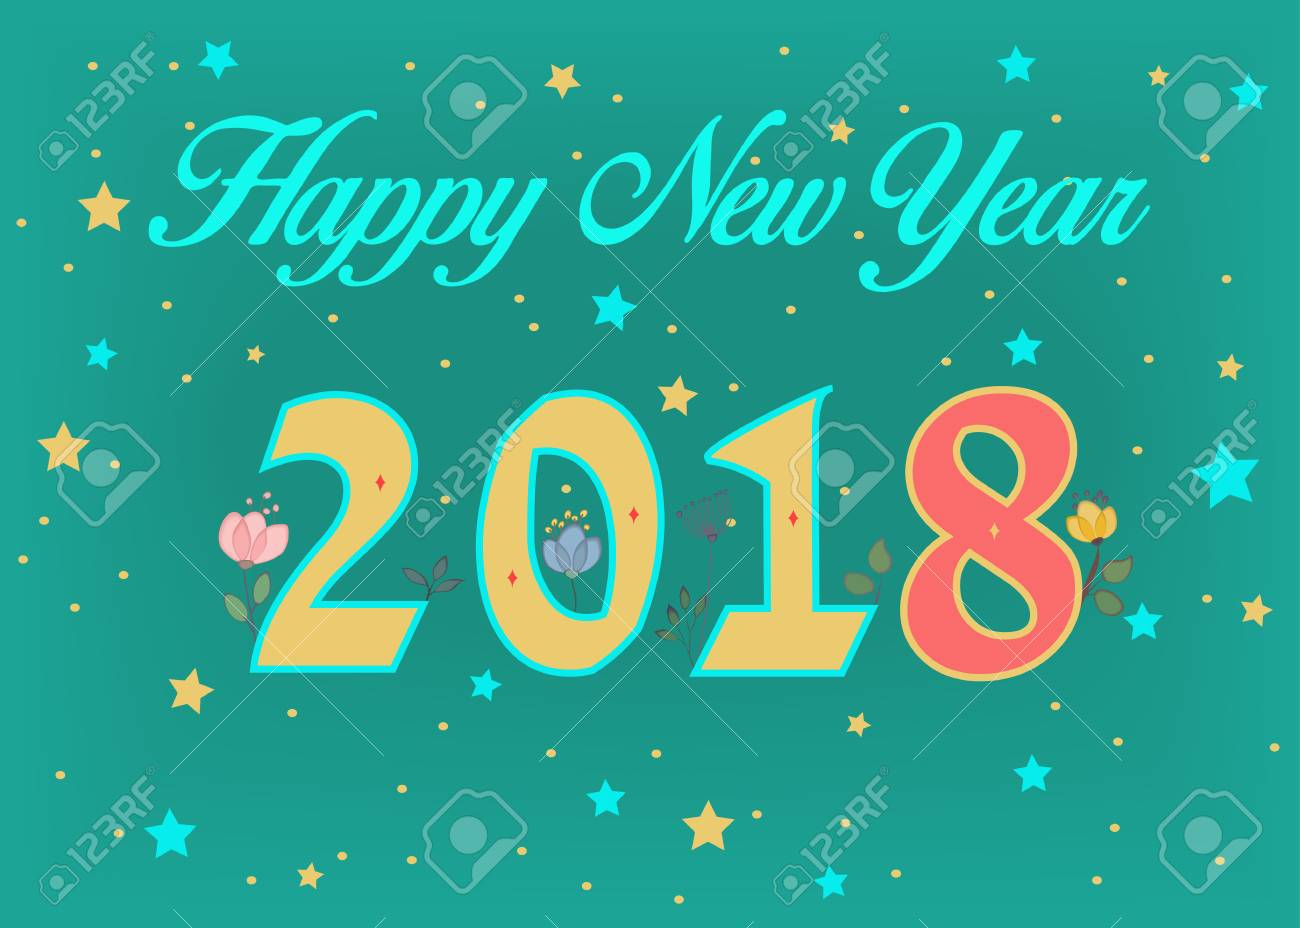 happy new year 2018 floral number blue text green background colorful stars